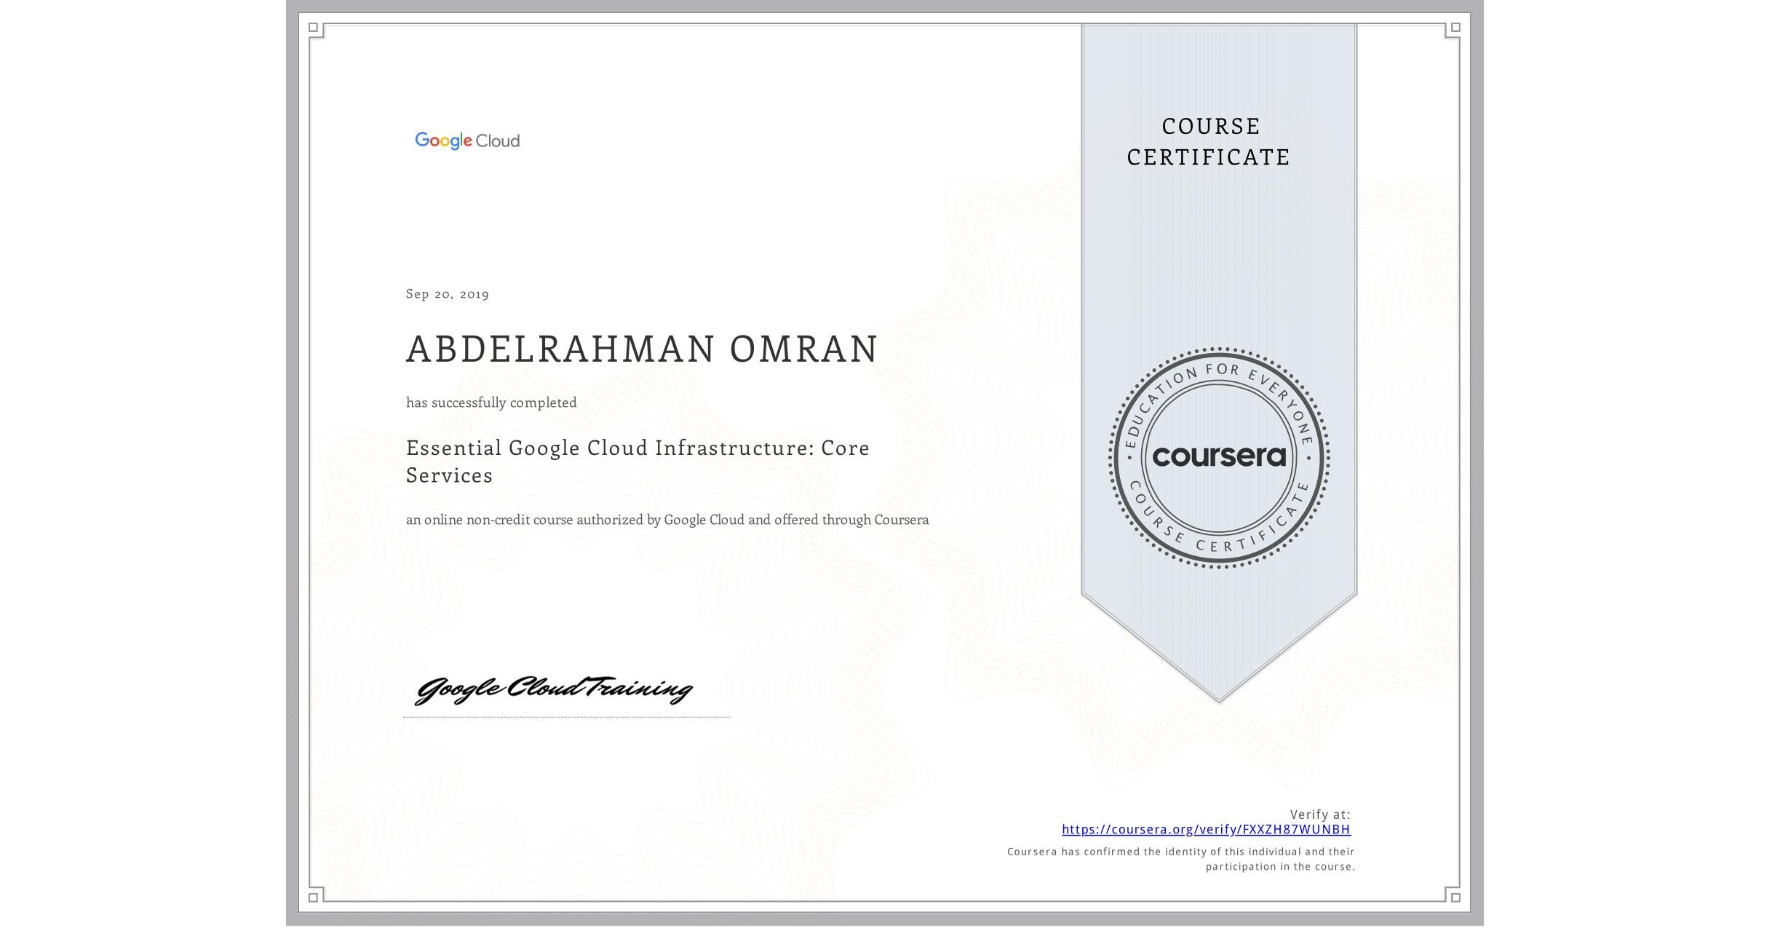 View certificate for ABDELRAHMAN OMRAN, Essential Google Cloud Infrastructure: Core Services, an online non-credit course authorized by Google Cloud and offered through Coursera